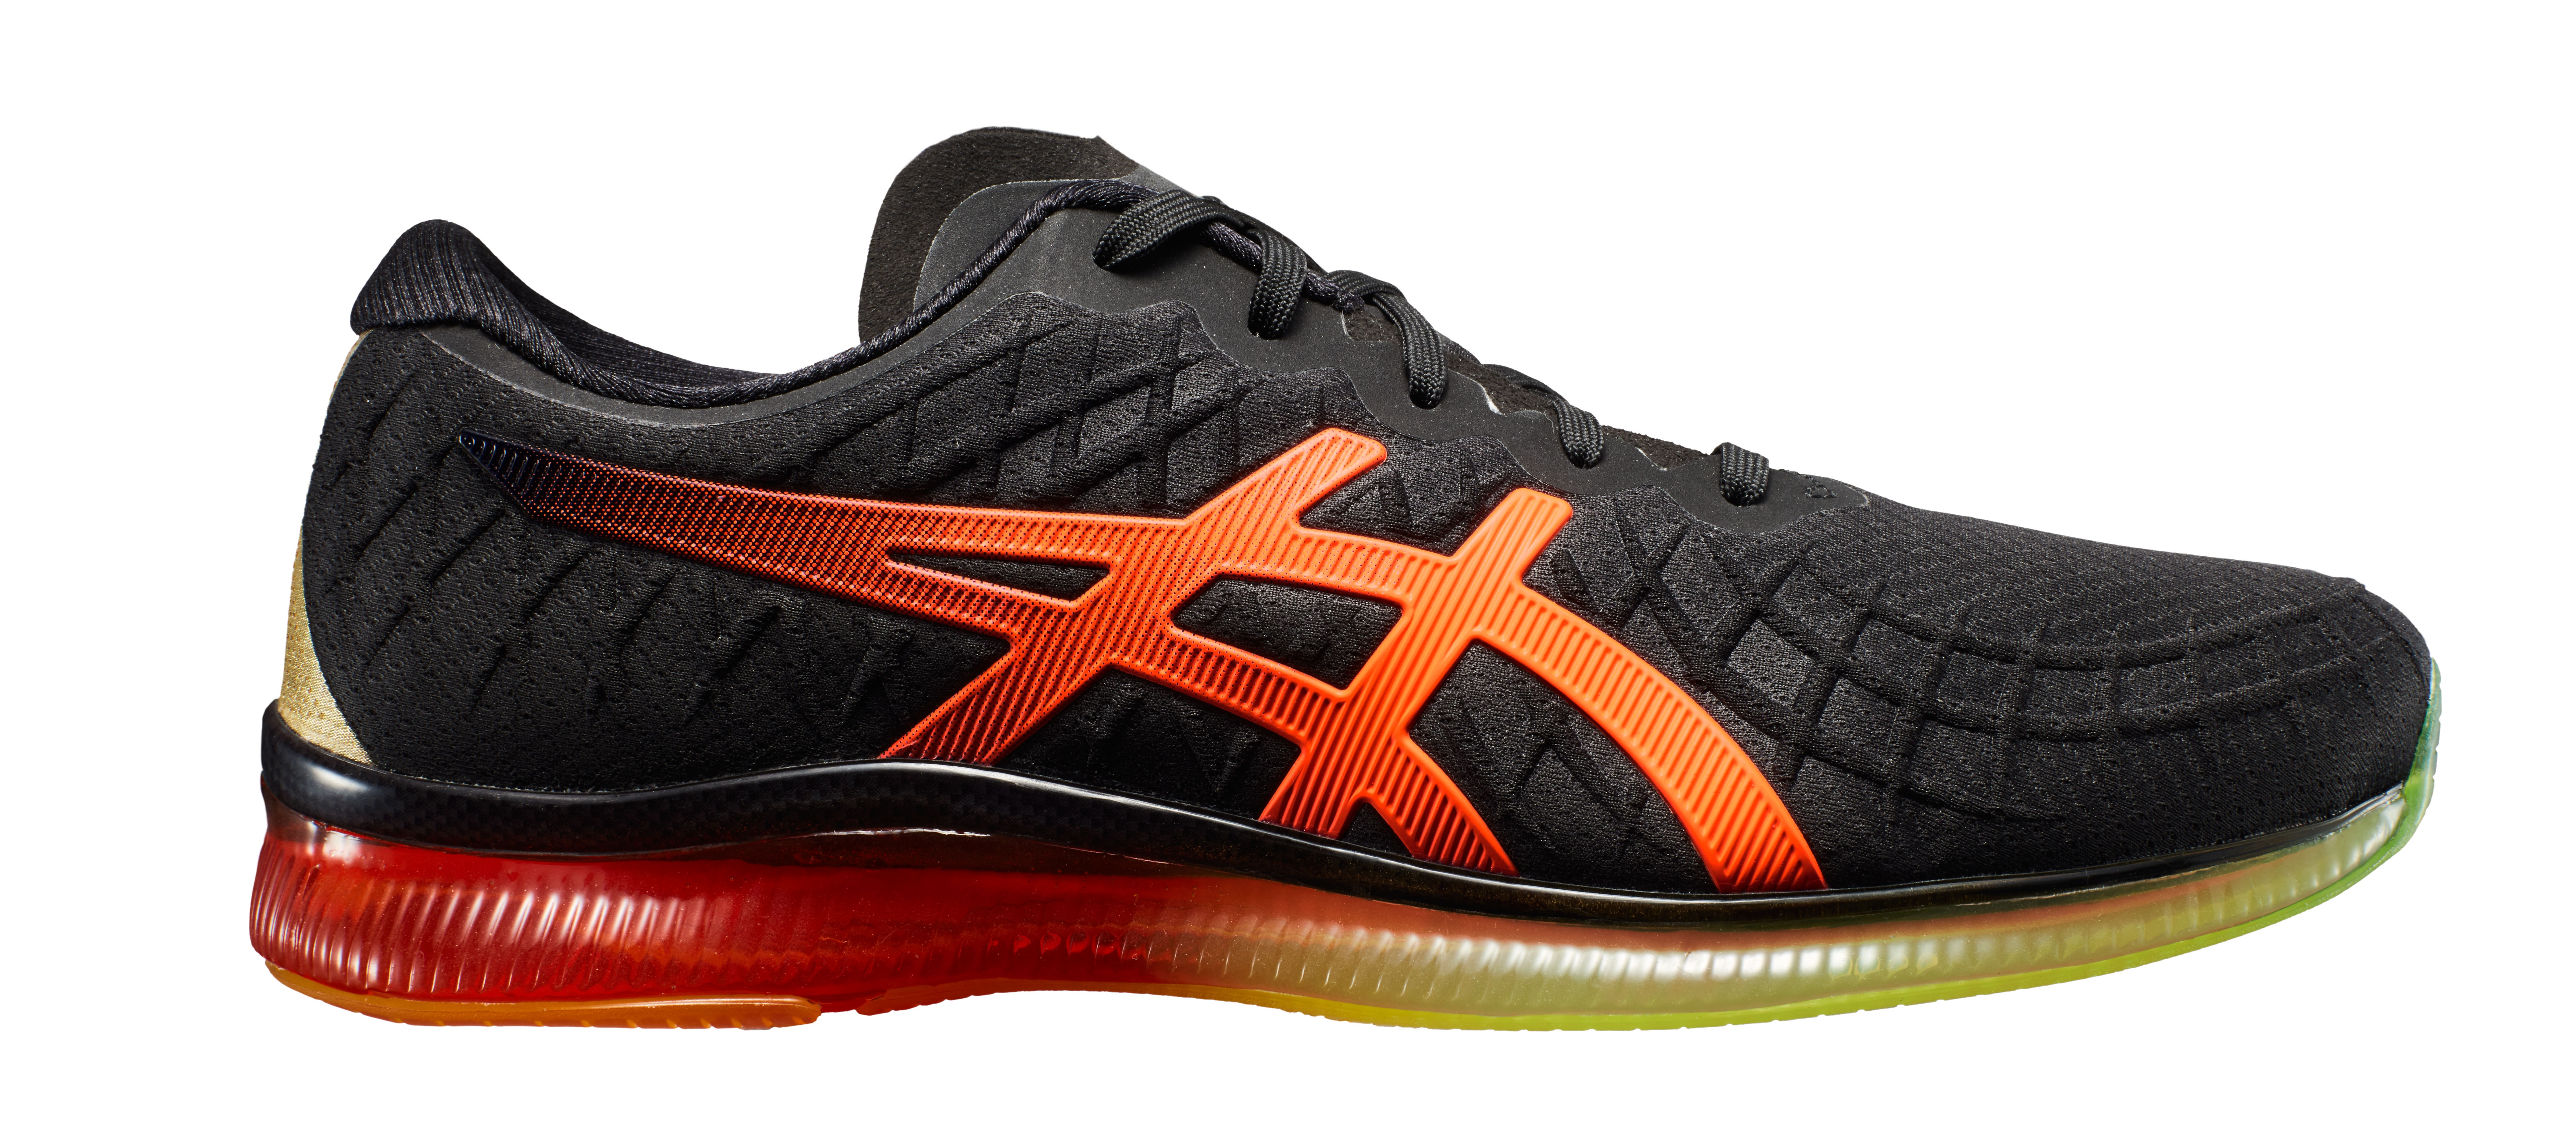 check out d696c 32417 GEL-QUANTUM INFINITY Shoes | ASICS (India)